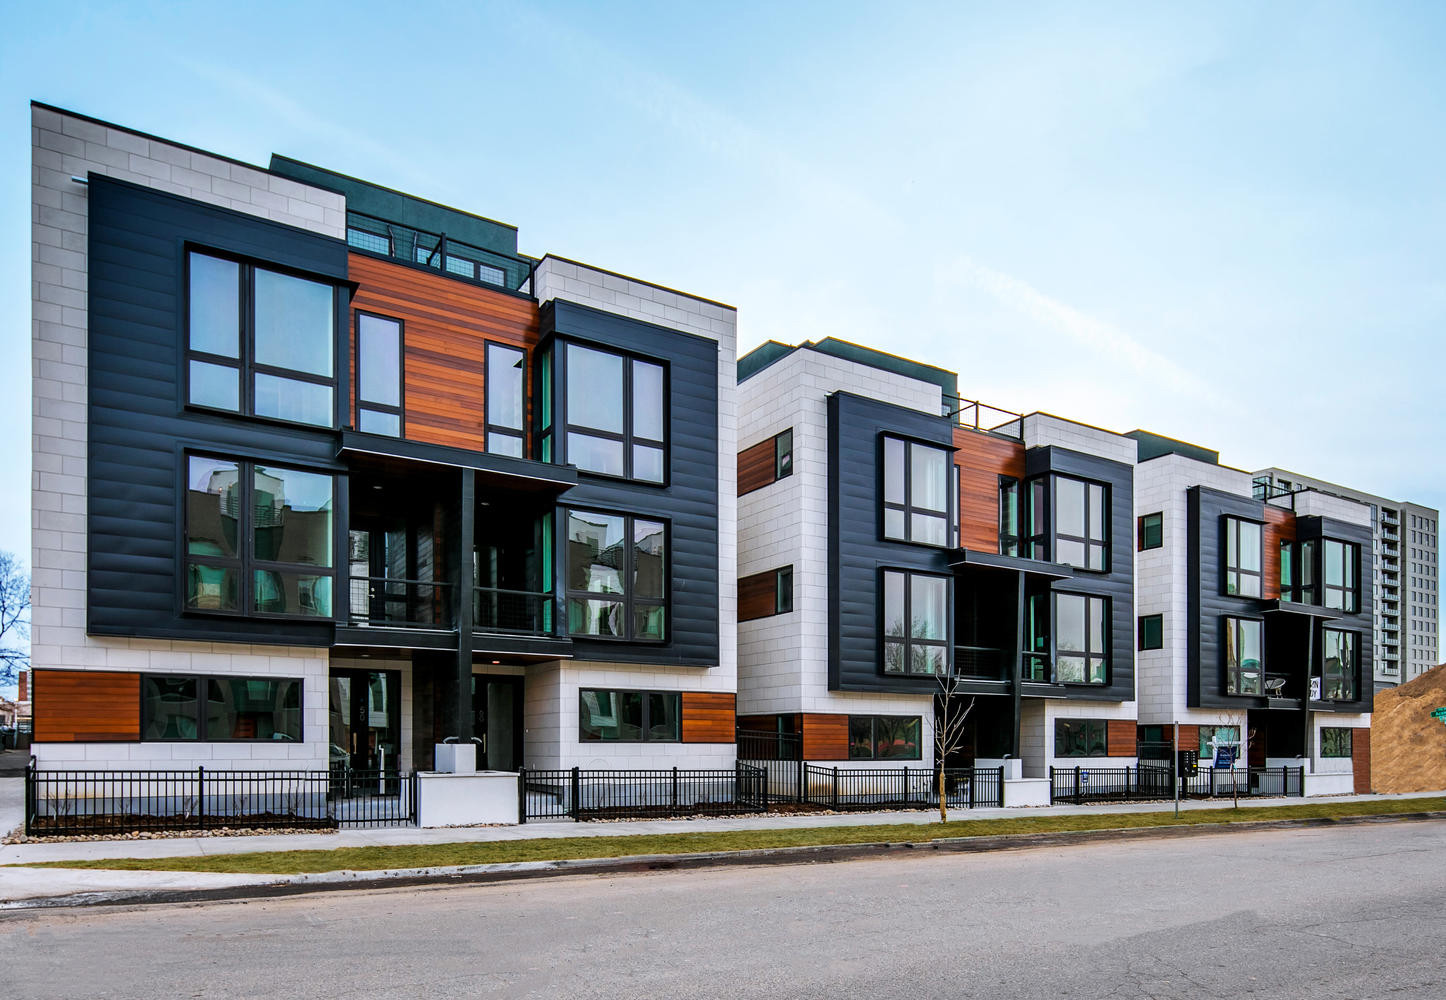 70 W 10th Avenue-large-002-007-Exterior-